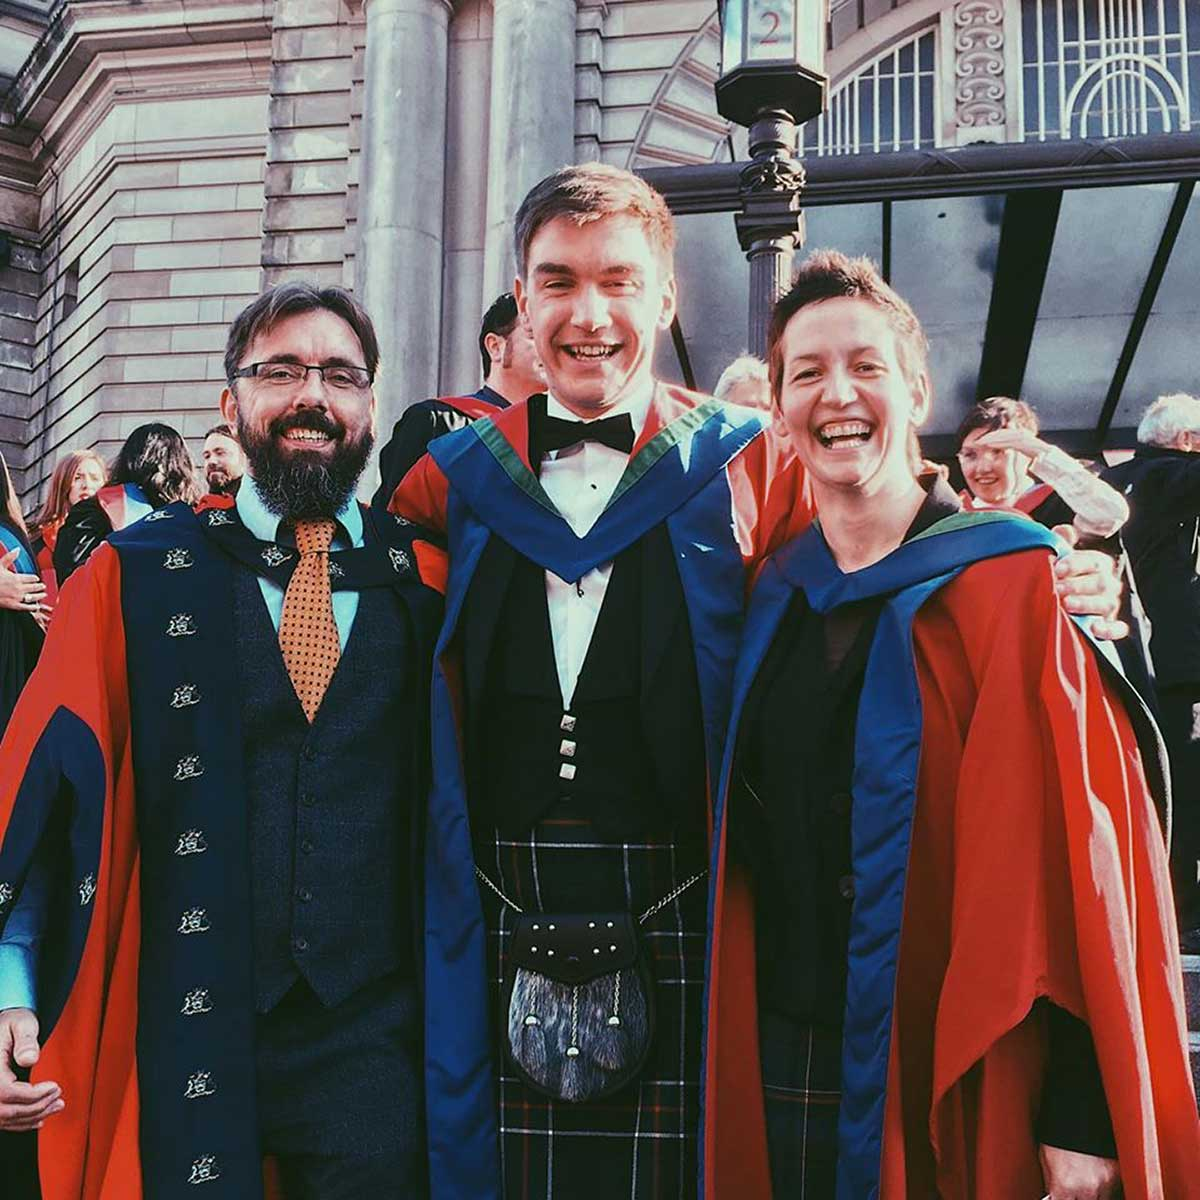 dr lewis kirkwood graduates with PhD in mountain biking vibrations school of applied sciences edinburgh napier university